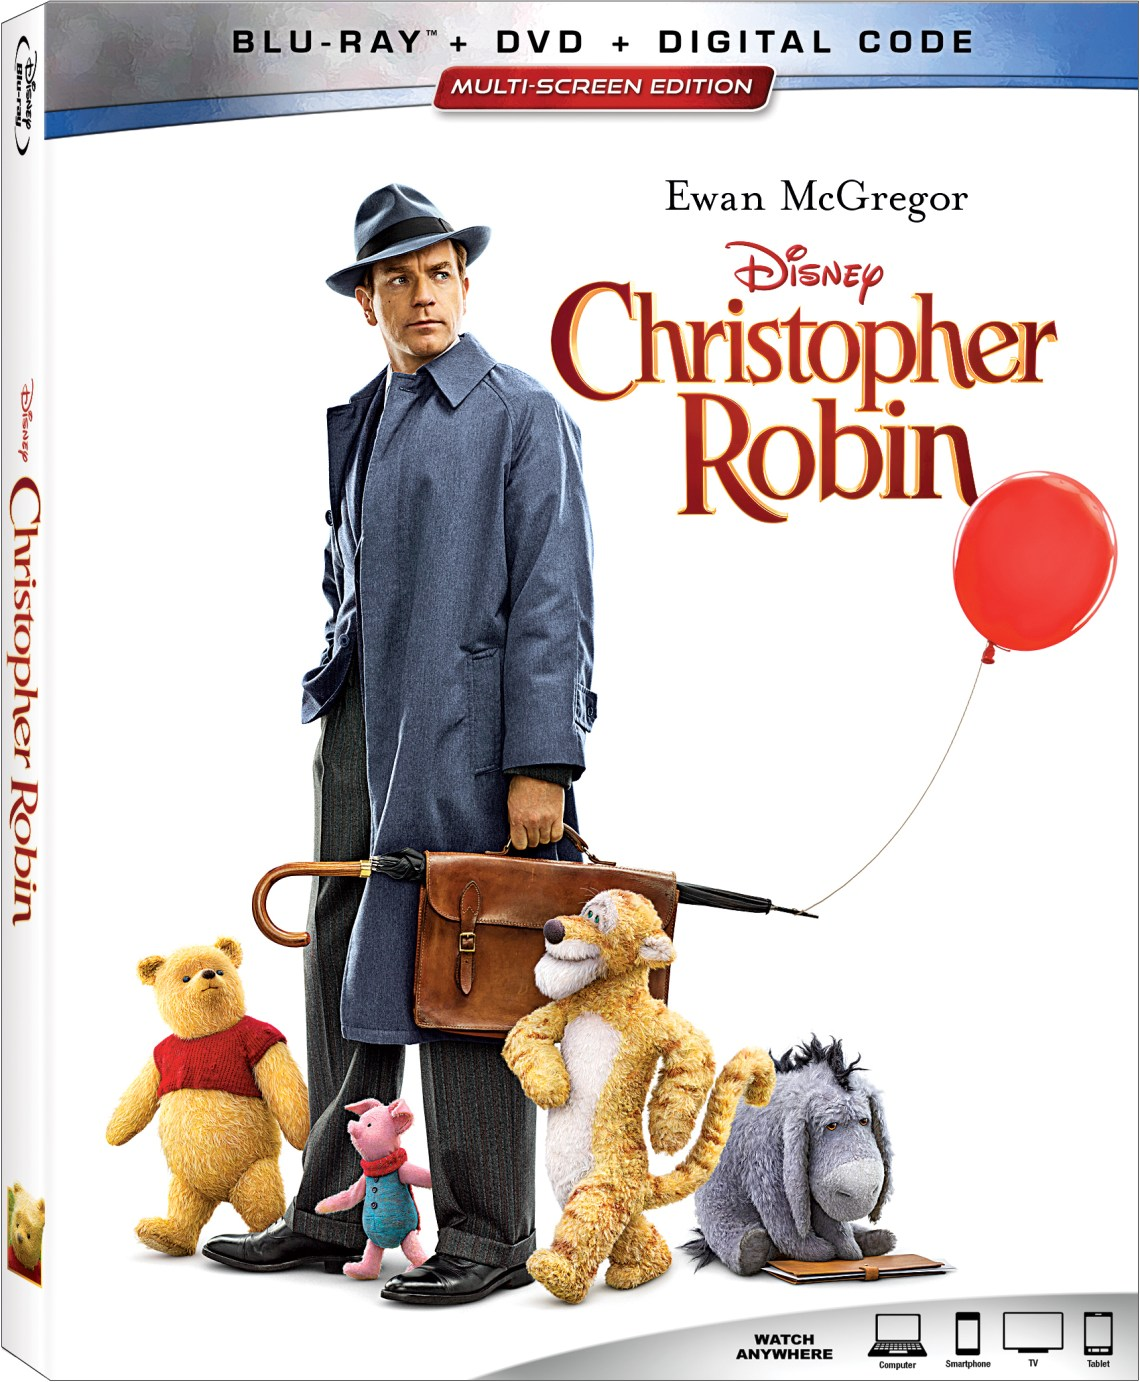 Disney's Christopher Robin on DVD November 6, 2018